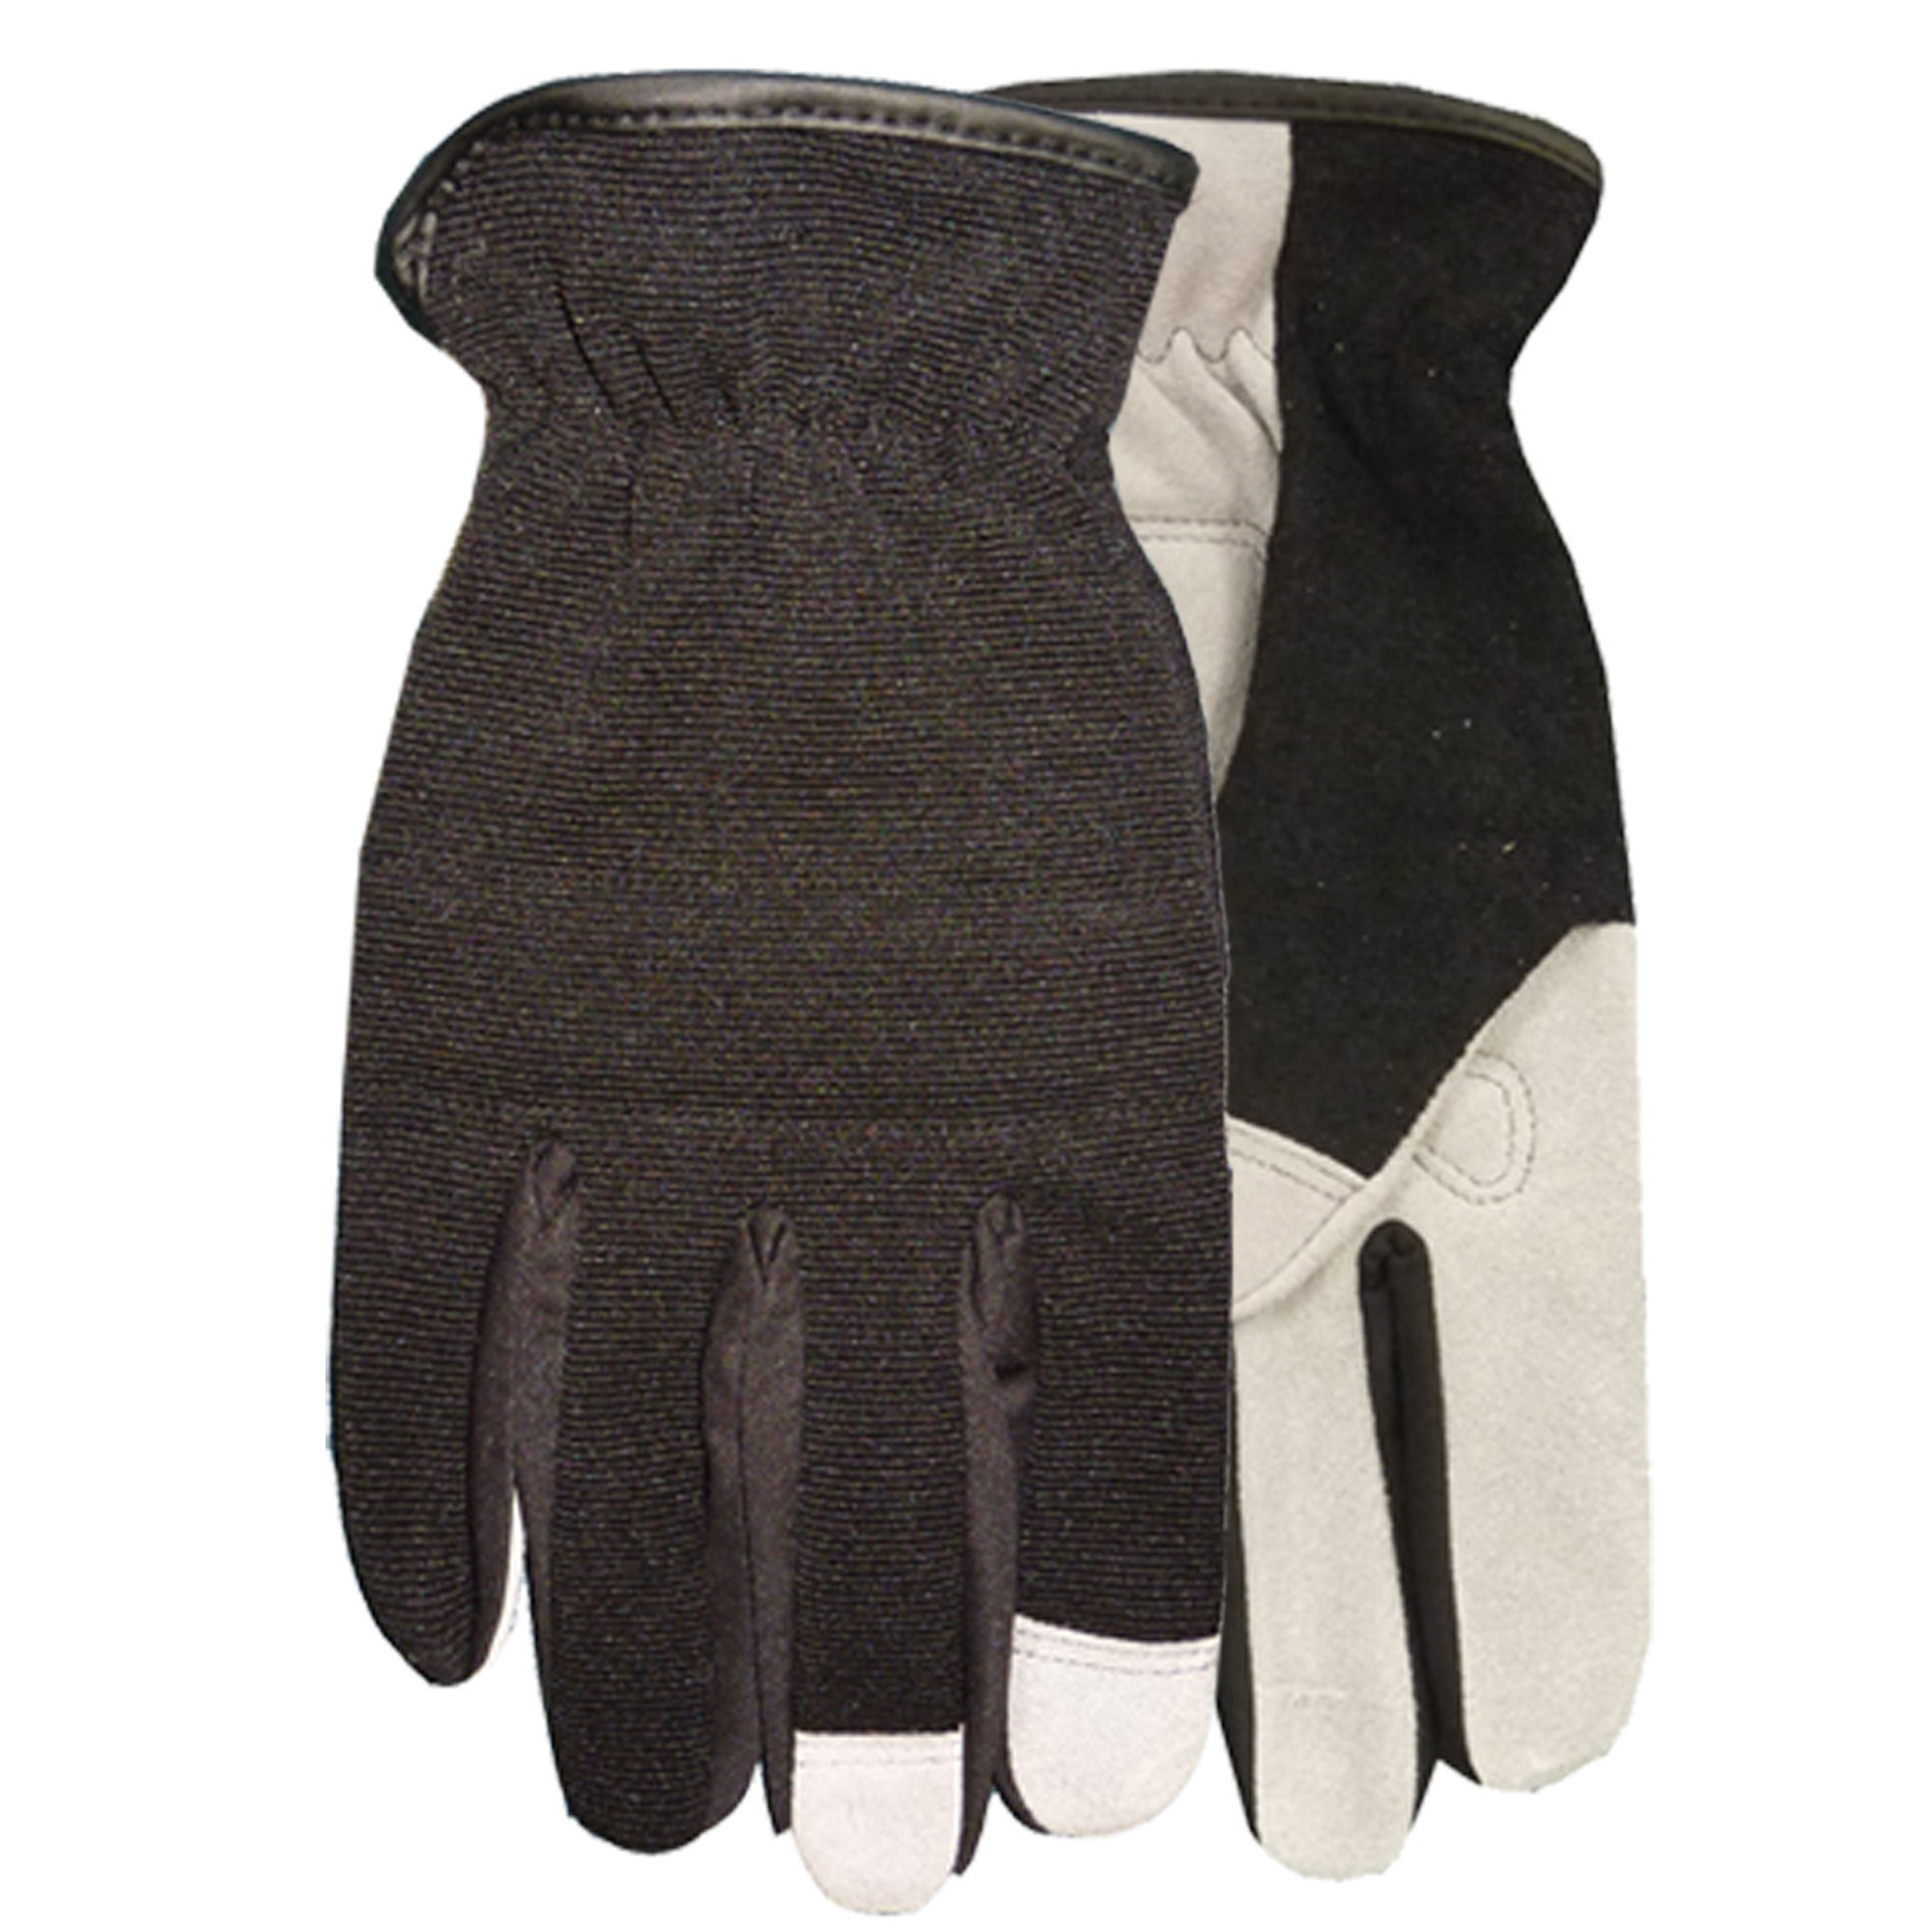 Midwest Quality Gloves, Inc. Men's High-Performance Leather Palm Gloves, Medium